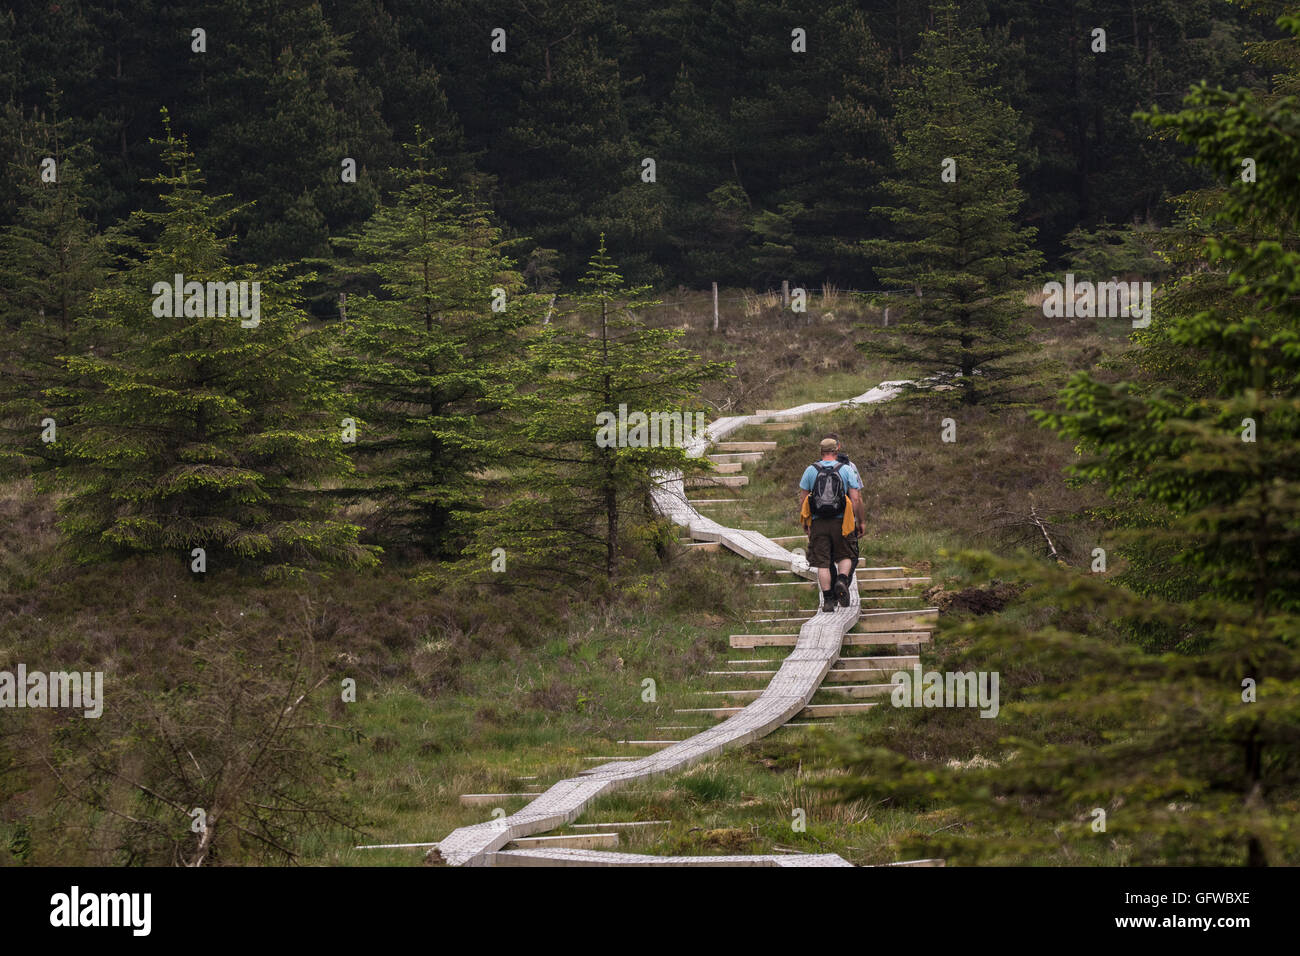 Hikers on upland boardwalks on the Wickow Way in county Wicklow Ireland - Stock Image